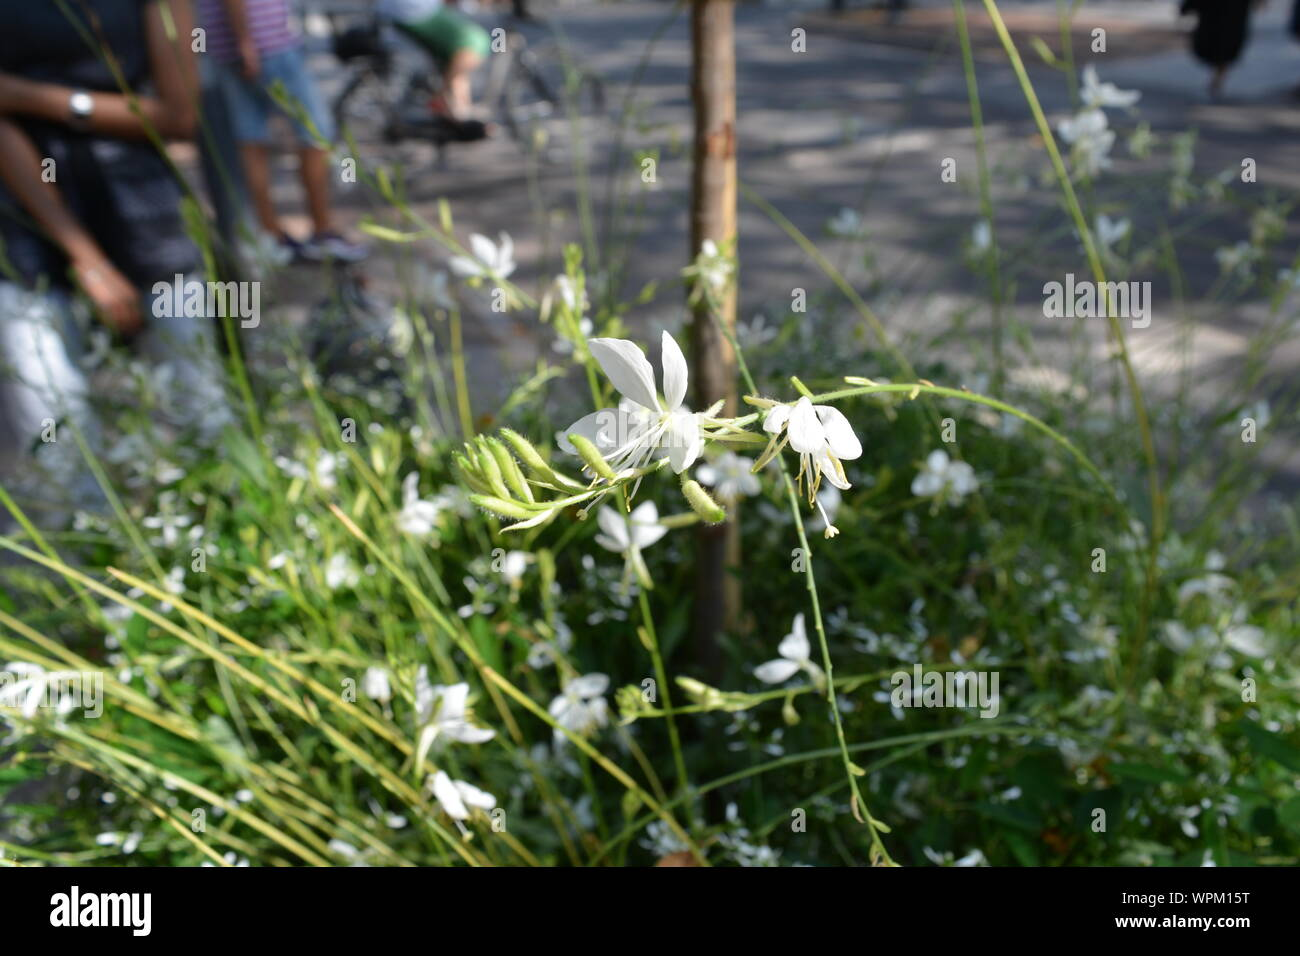 White gaura also known as Lindheimer's beeblossom in a garden at Duesseldorf in Germany Stock Photo